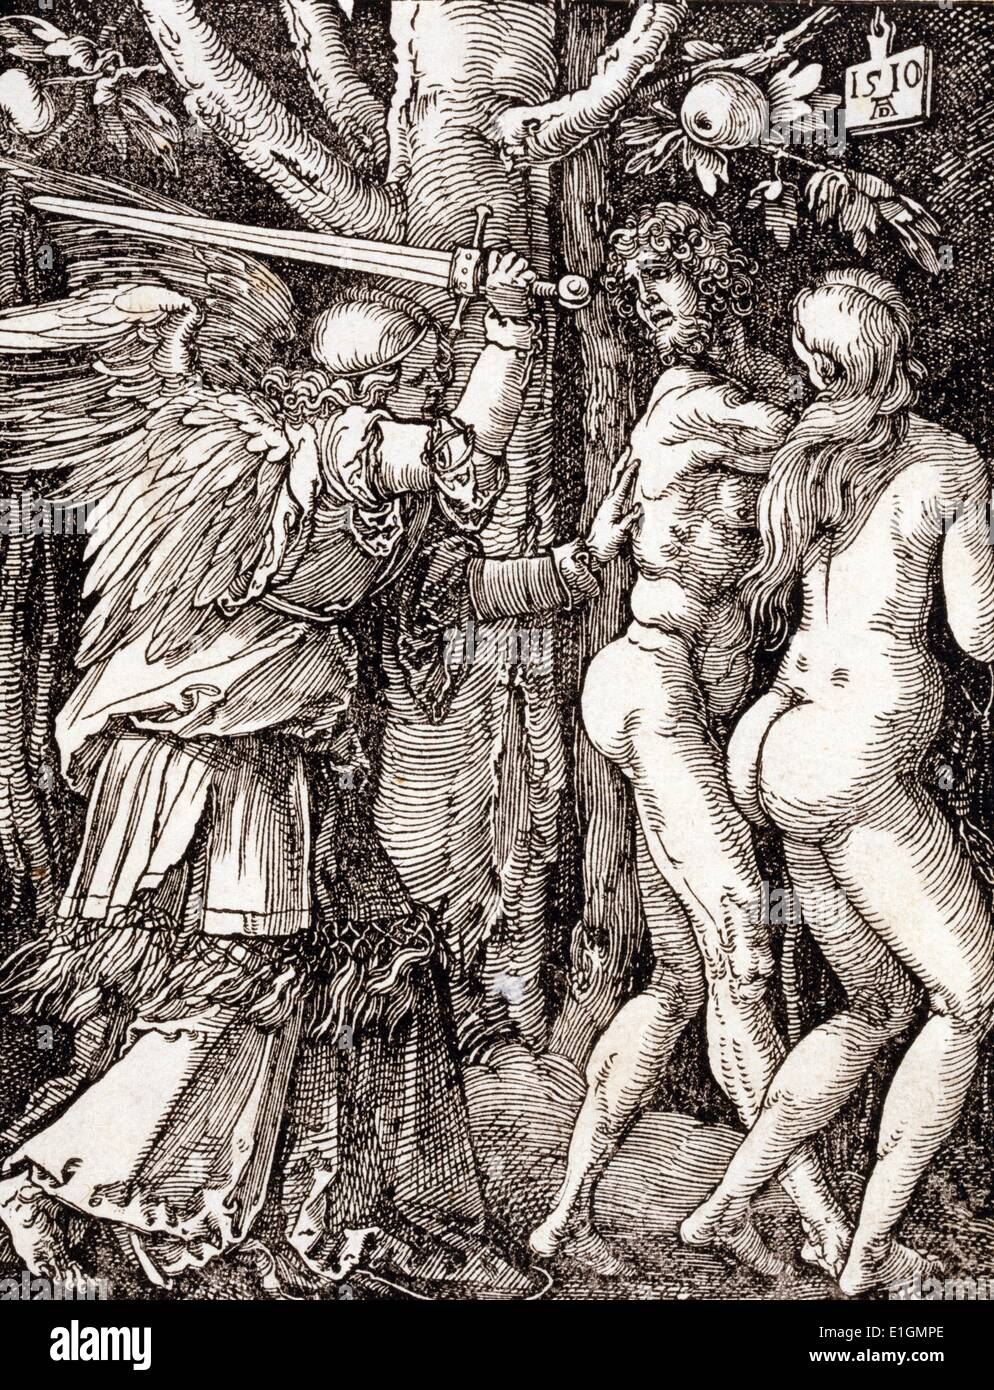 Small Passion. The expulsion from Paradise 1510. By Albrecht Dürer (1471-1528). Dated 1510 - Stock Image